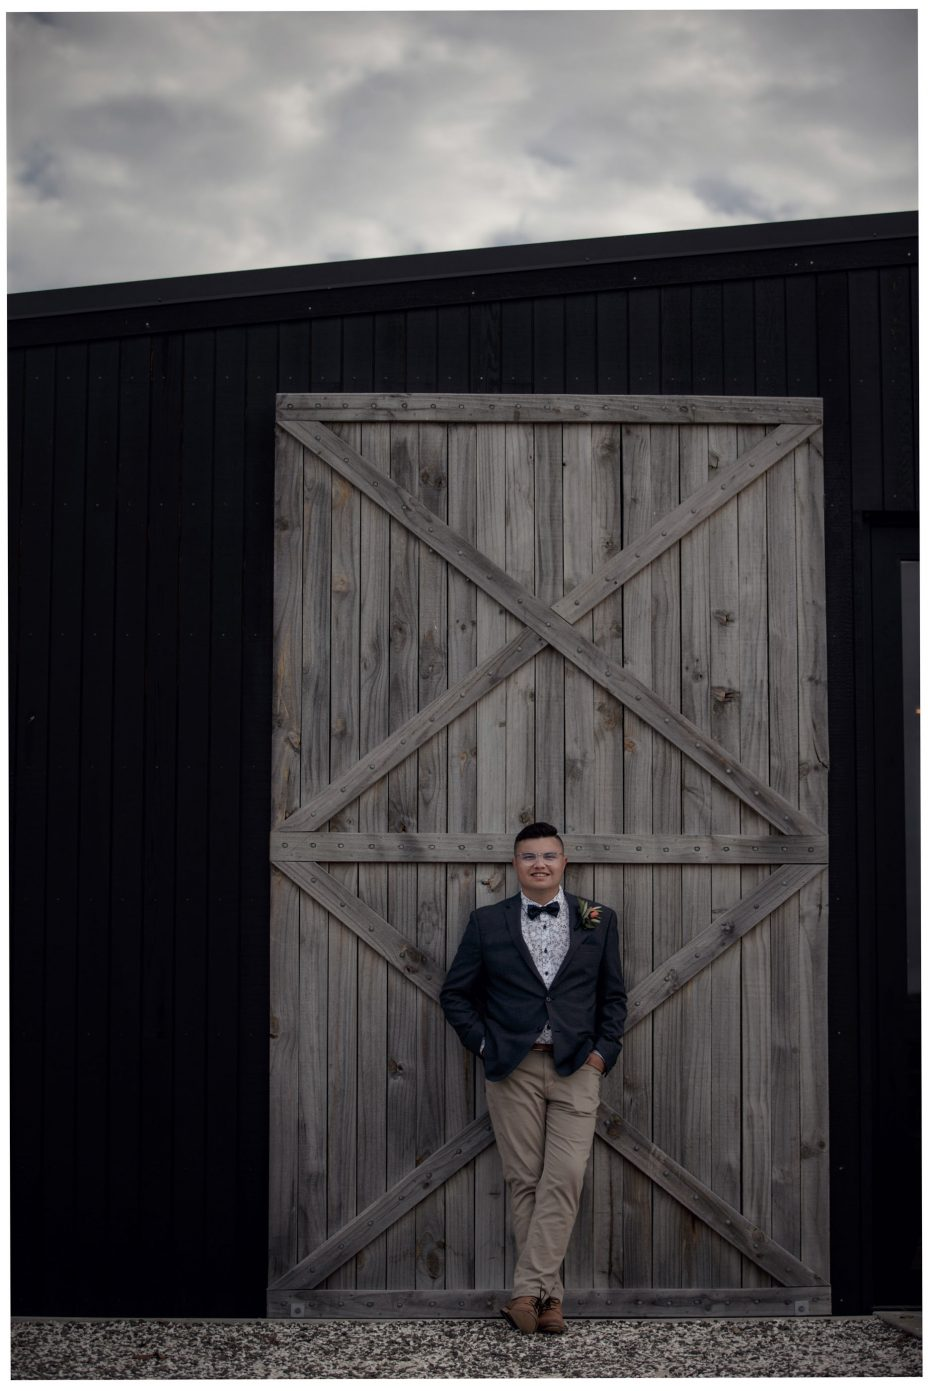 Bride groom posed against the large wooden doors of The Barn wedding reception venue at The Hunting Lodge Winery